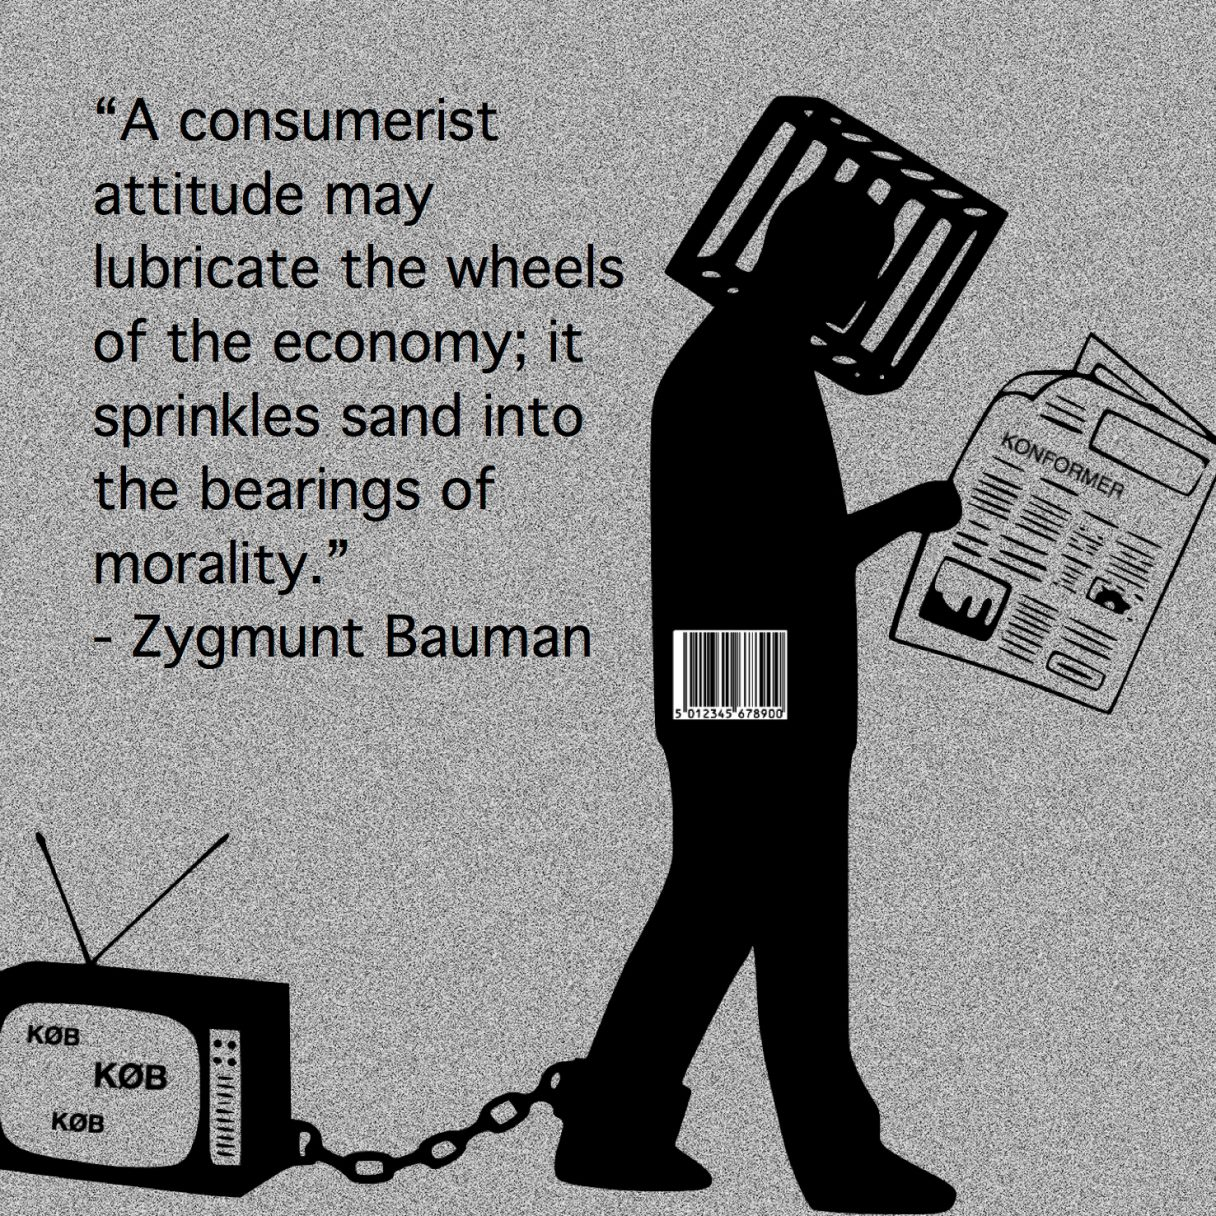 "Dagens citat – Zygmunt Bauman: ""A consumerist attitude may lubricate the wheels of the economy; it sprinkles sand into the bearings of morality."" Konsumerisme. Originalillustrationer: pixabay.com. Citatillustration: Maria Busch."